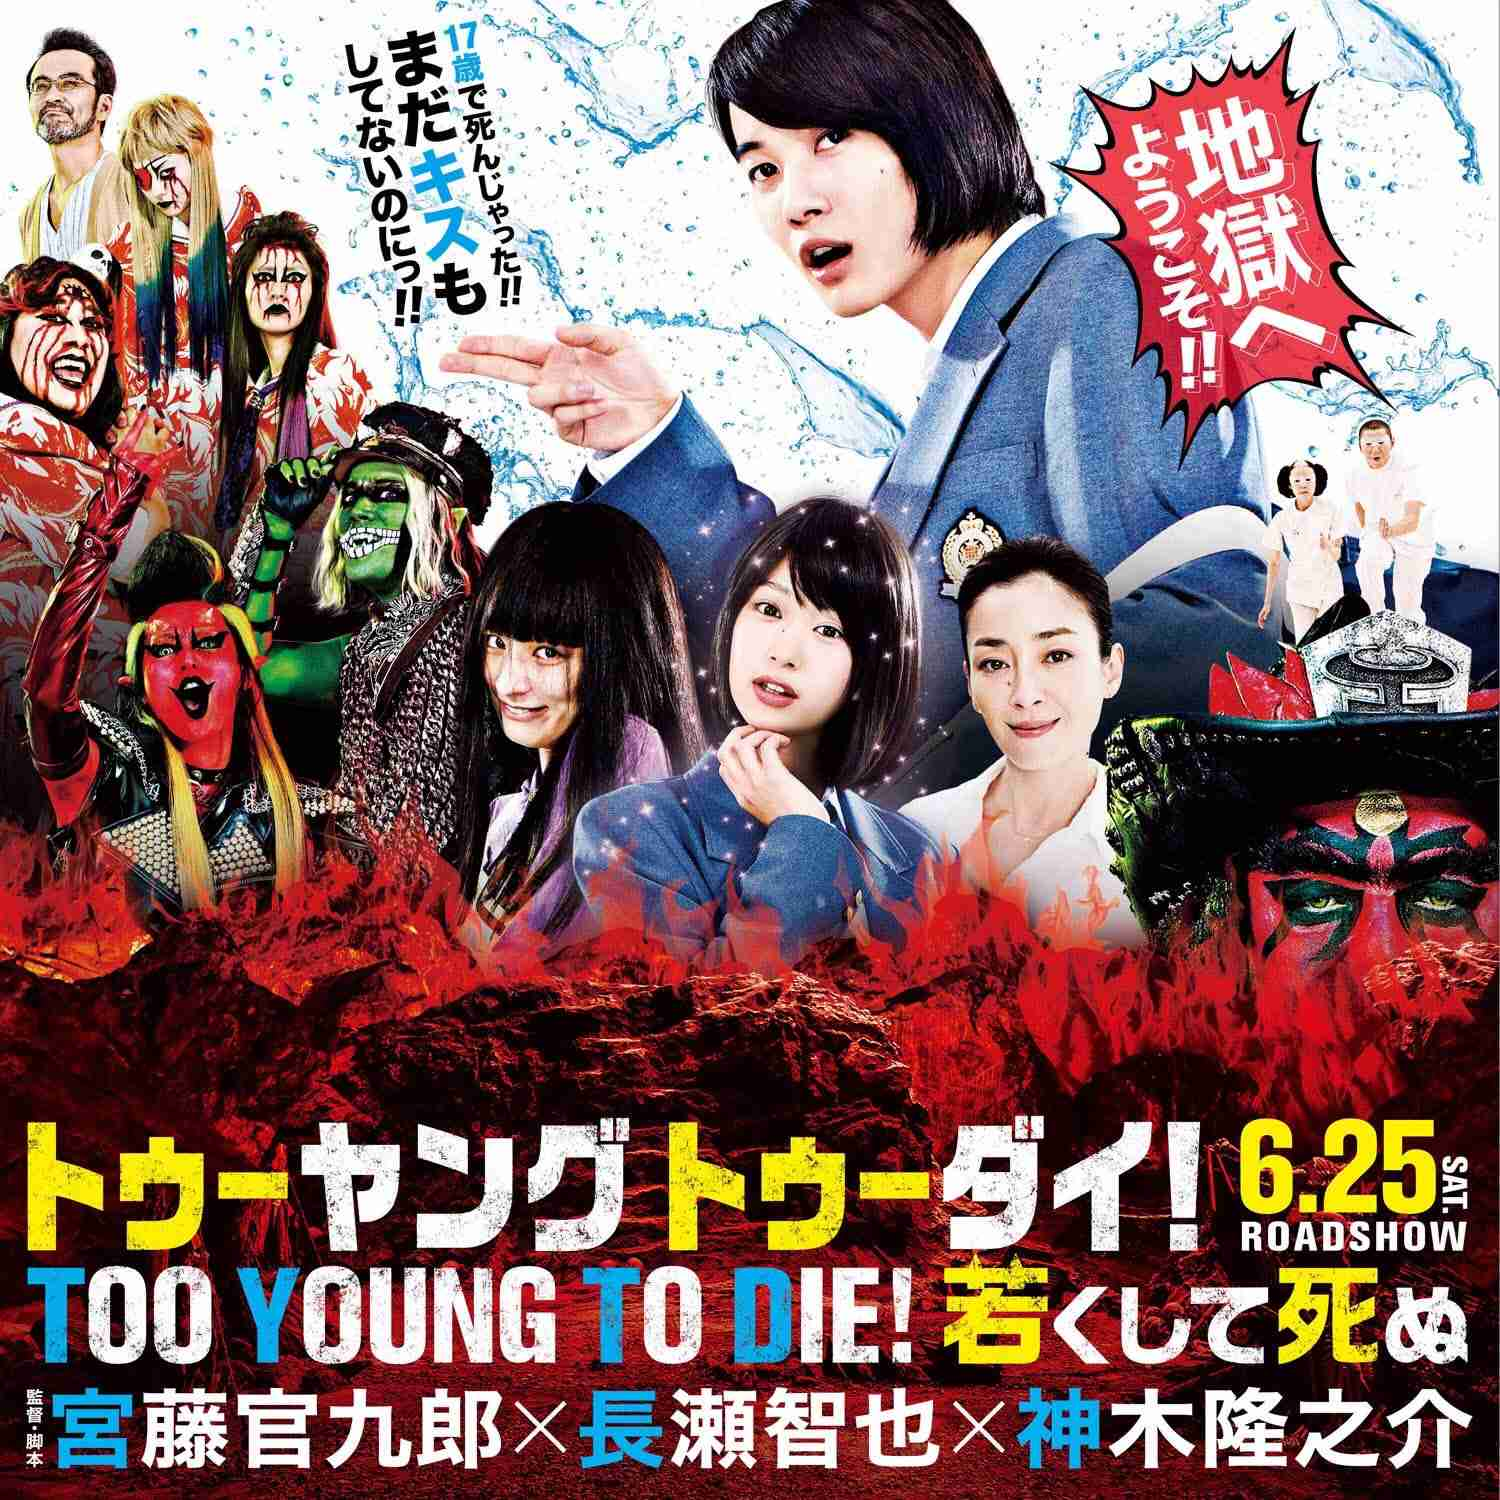 「TOO YOUNG TO DIE! 若くして死ぬ」の感想(ネタバレ注意)